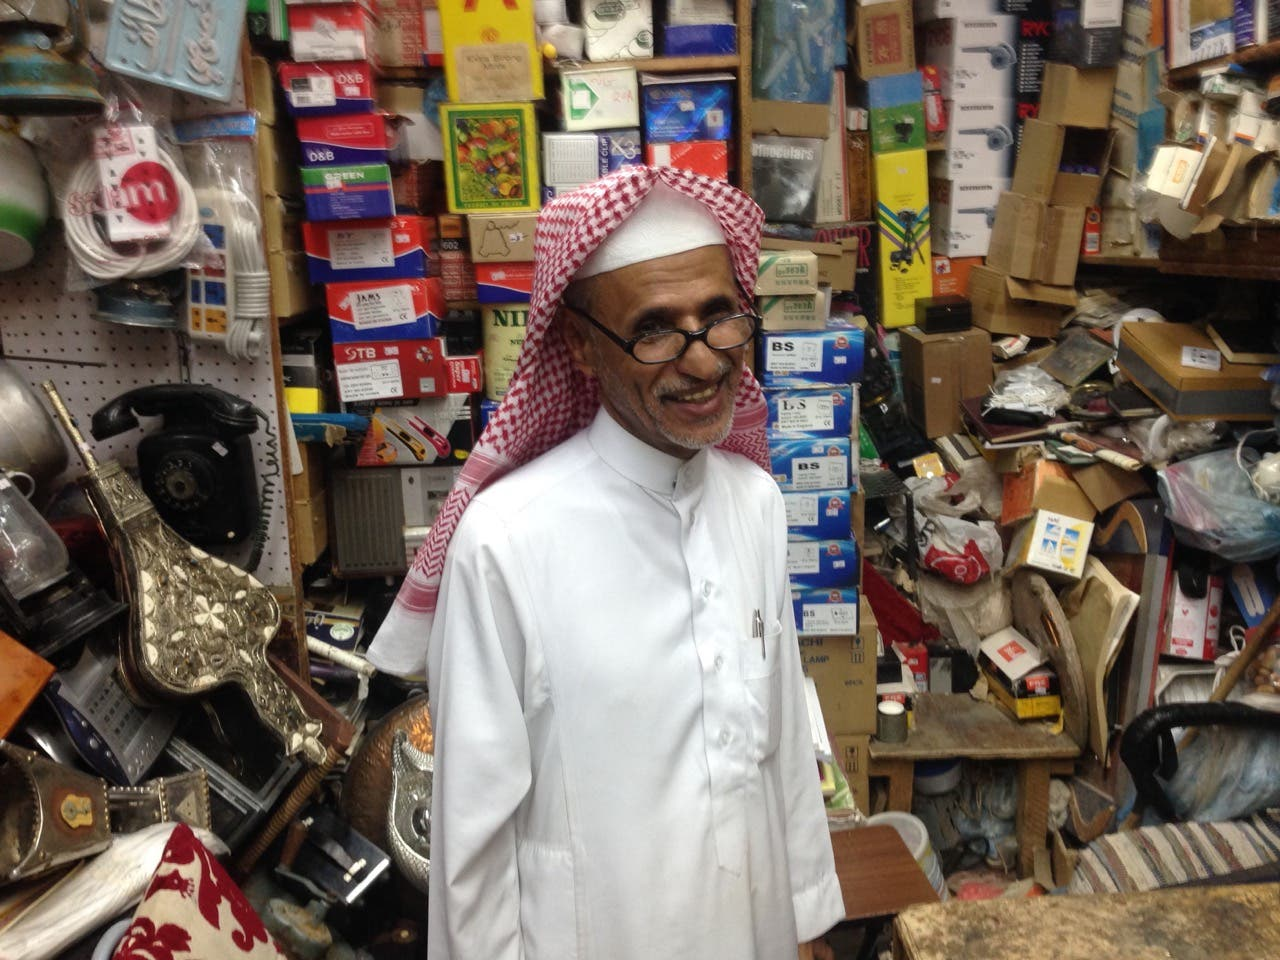 DIY dealer Ali Omar Binjahlan loves to fix old radios and record players. (Photo: Miles Lawrence)